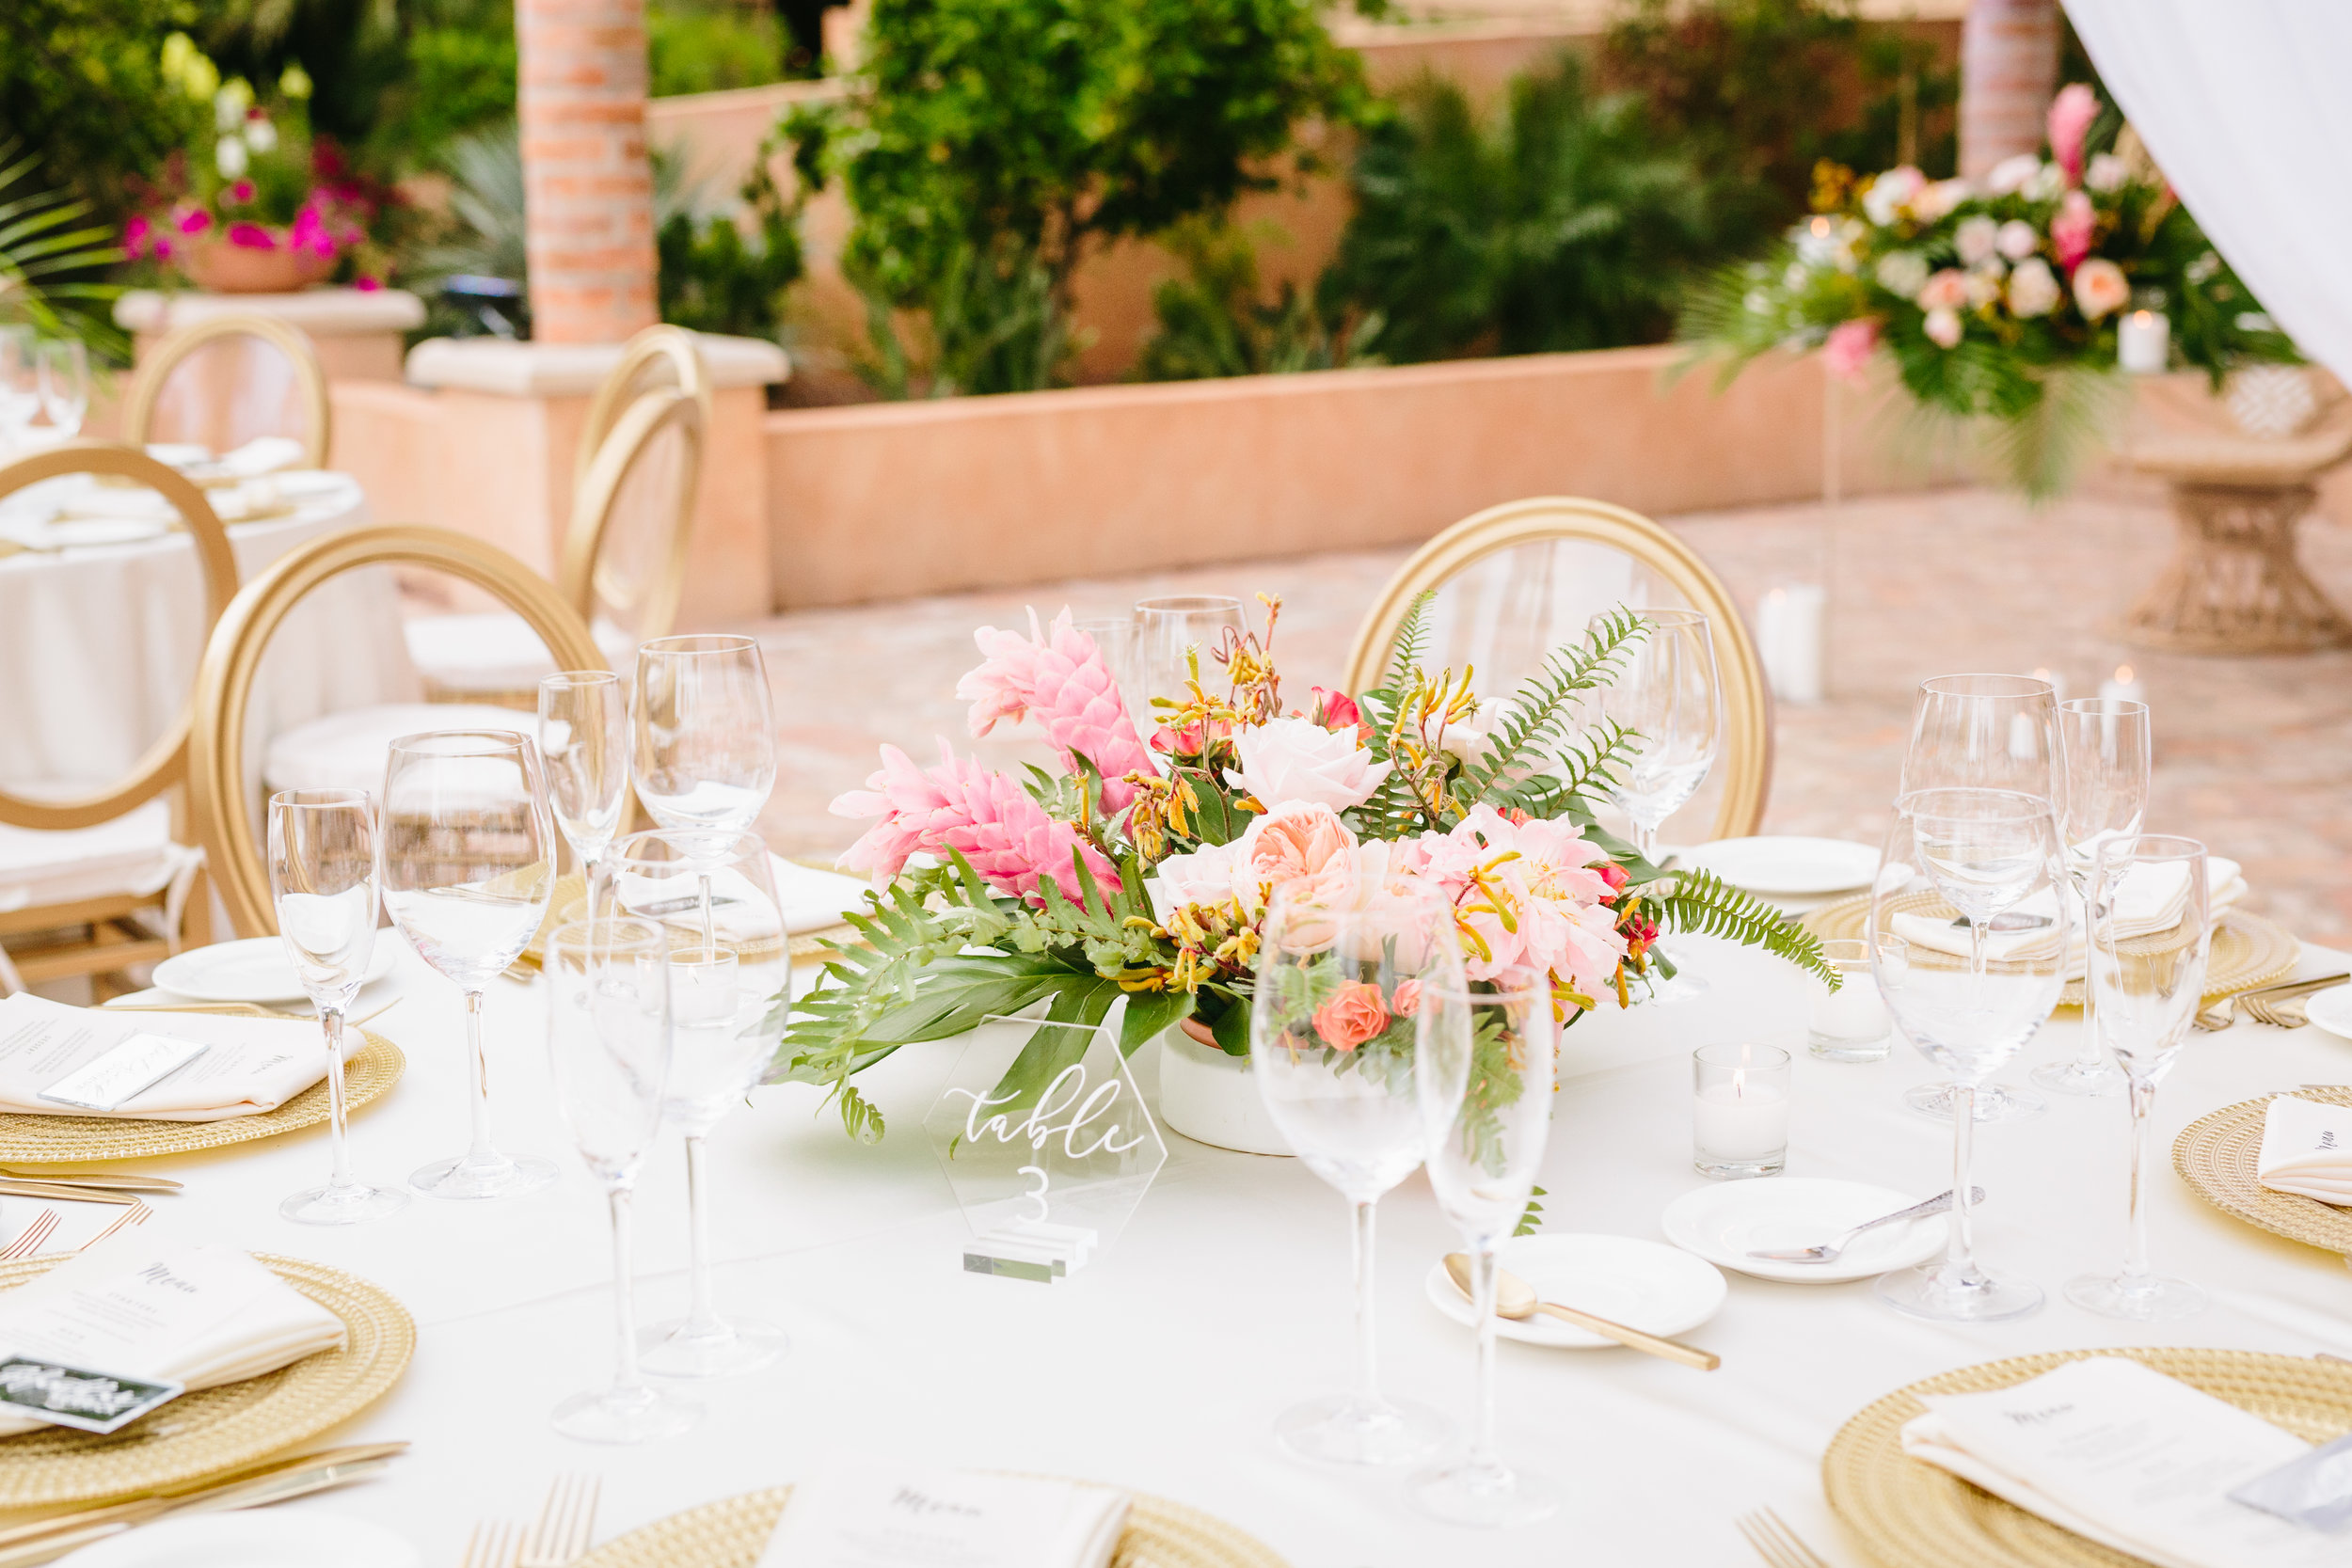 Tropical Royal Palms Wedding - Arizona florist Phoenix scottsdale Mesa chandler Sedona Flagstaff Prescott - Low Peony, Garden Rose, and Ginger Centerpieces